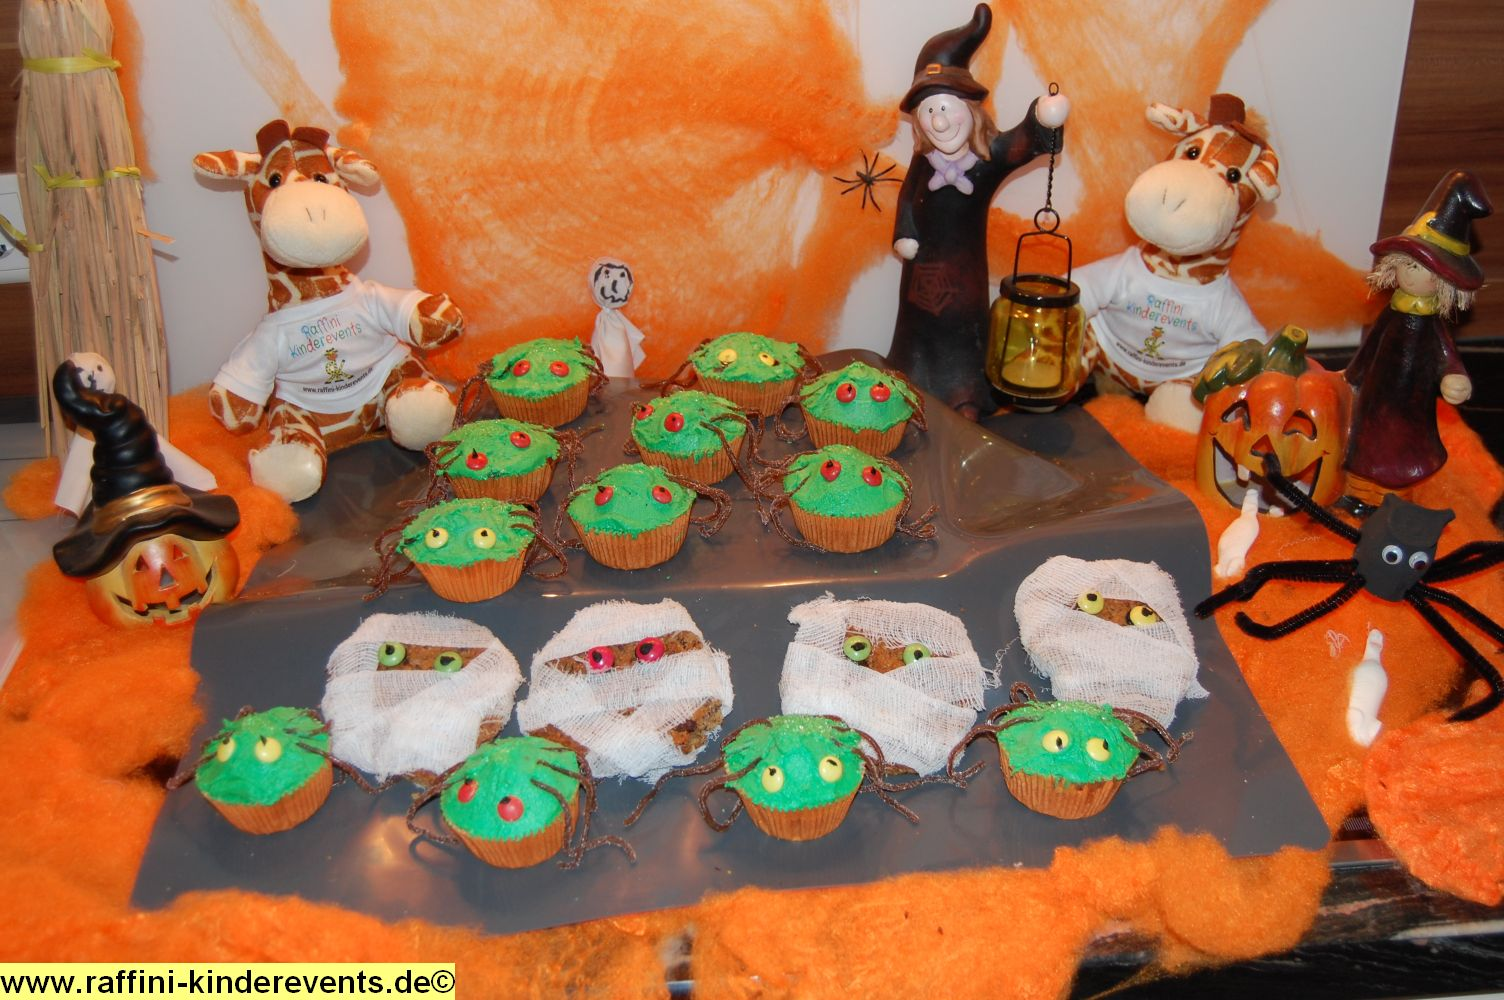 halloween party backen fuer kinder 122 raffini kinderevents kindereventagentur mannheim. Black Bedroom Furniture Sets. Home Design Ideas